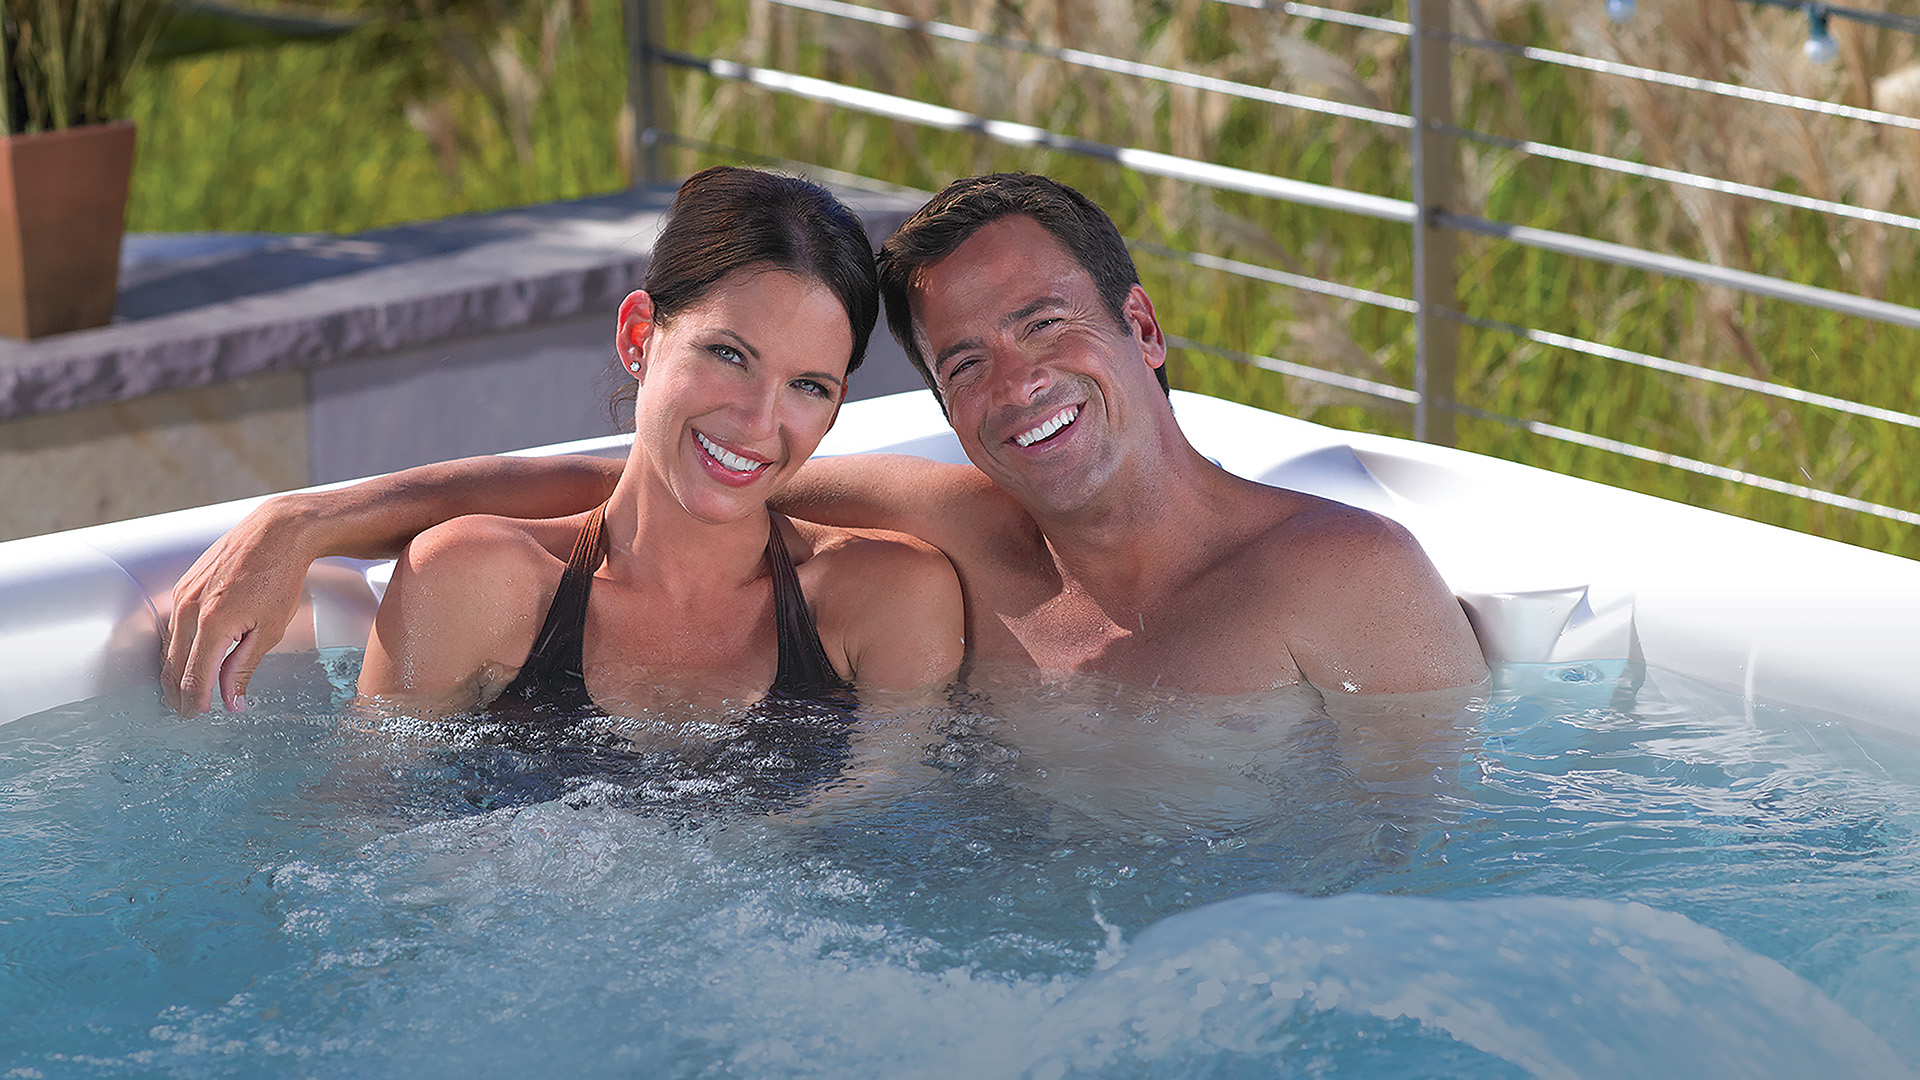 5 Things You Need to Know Before Buying a Hot Tub